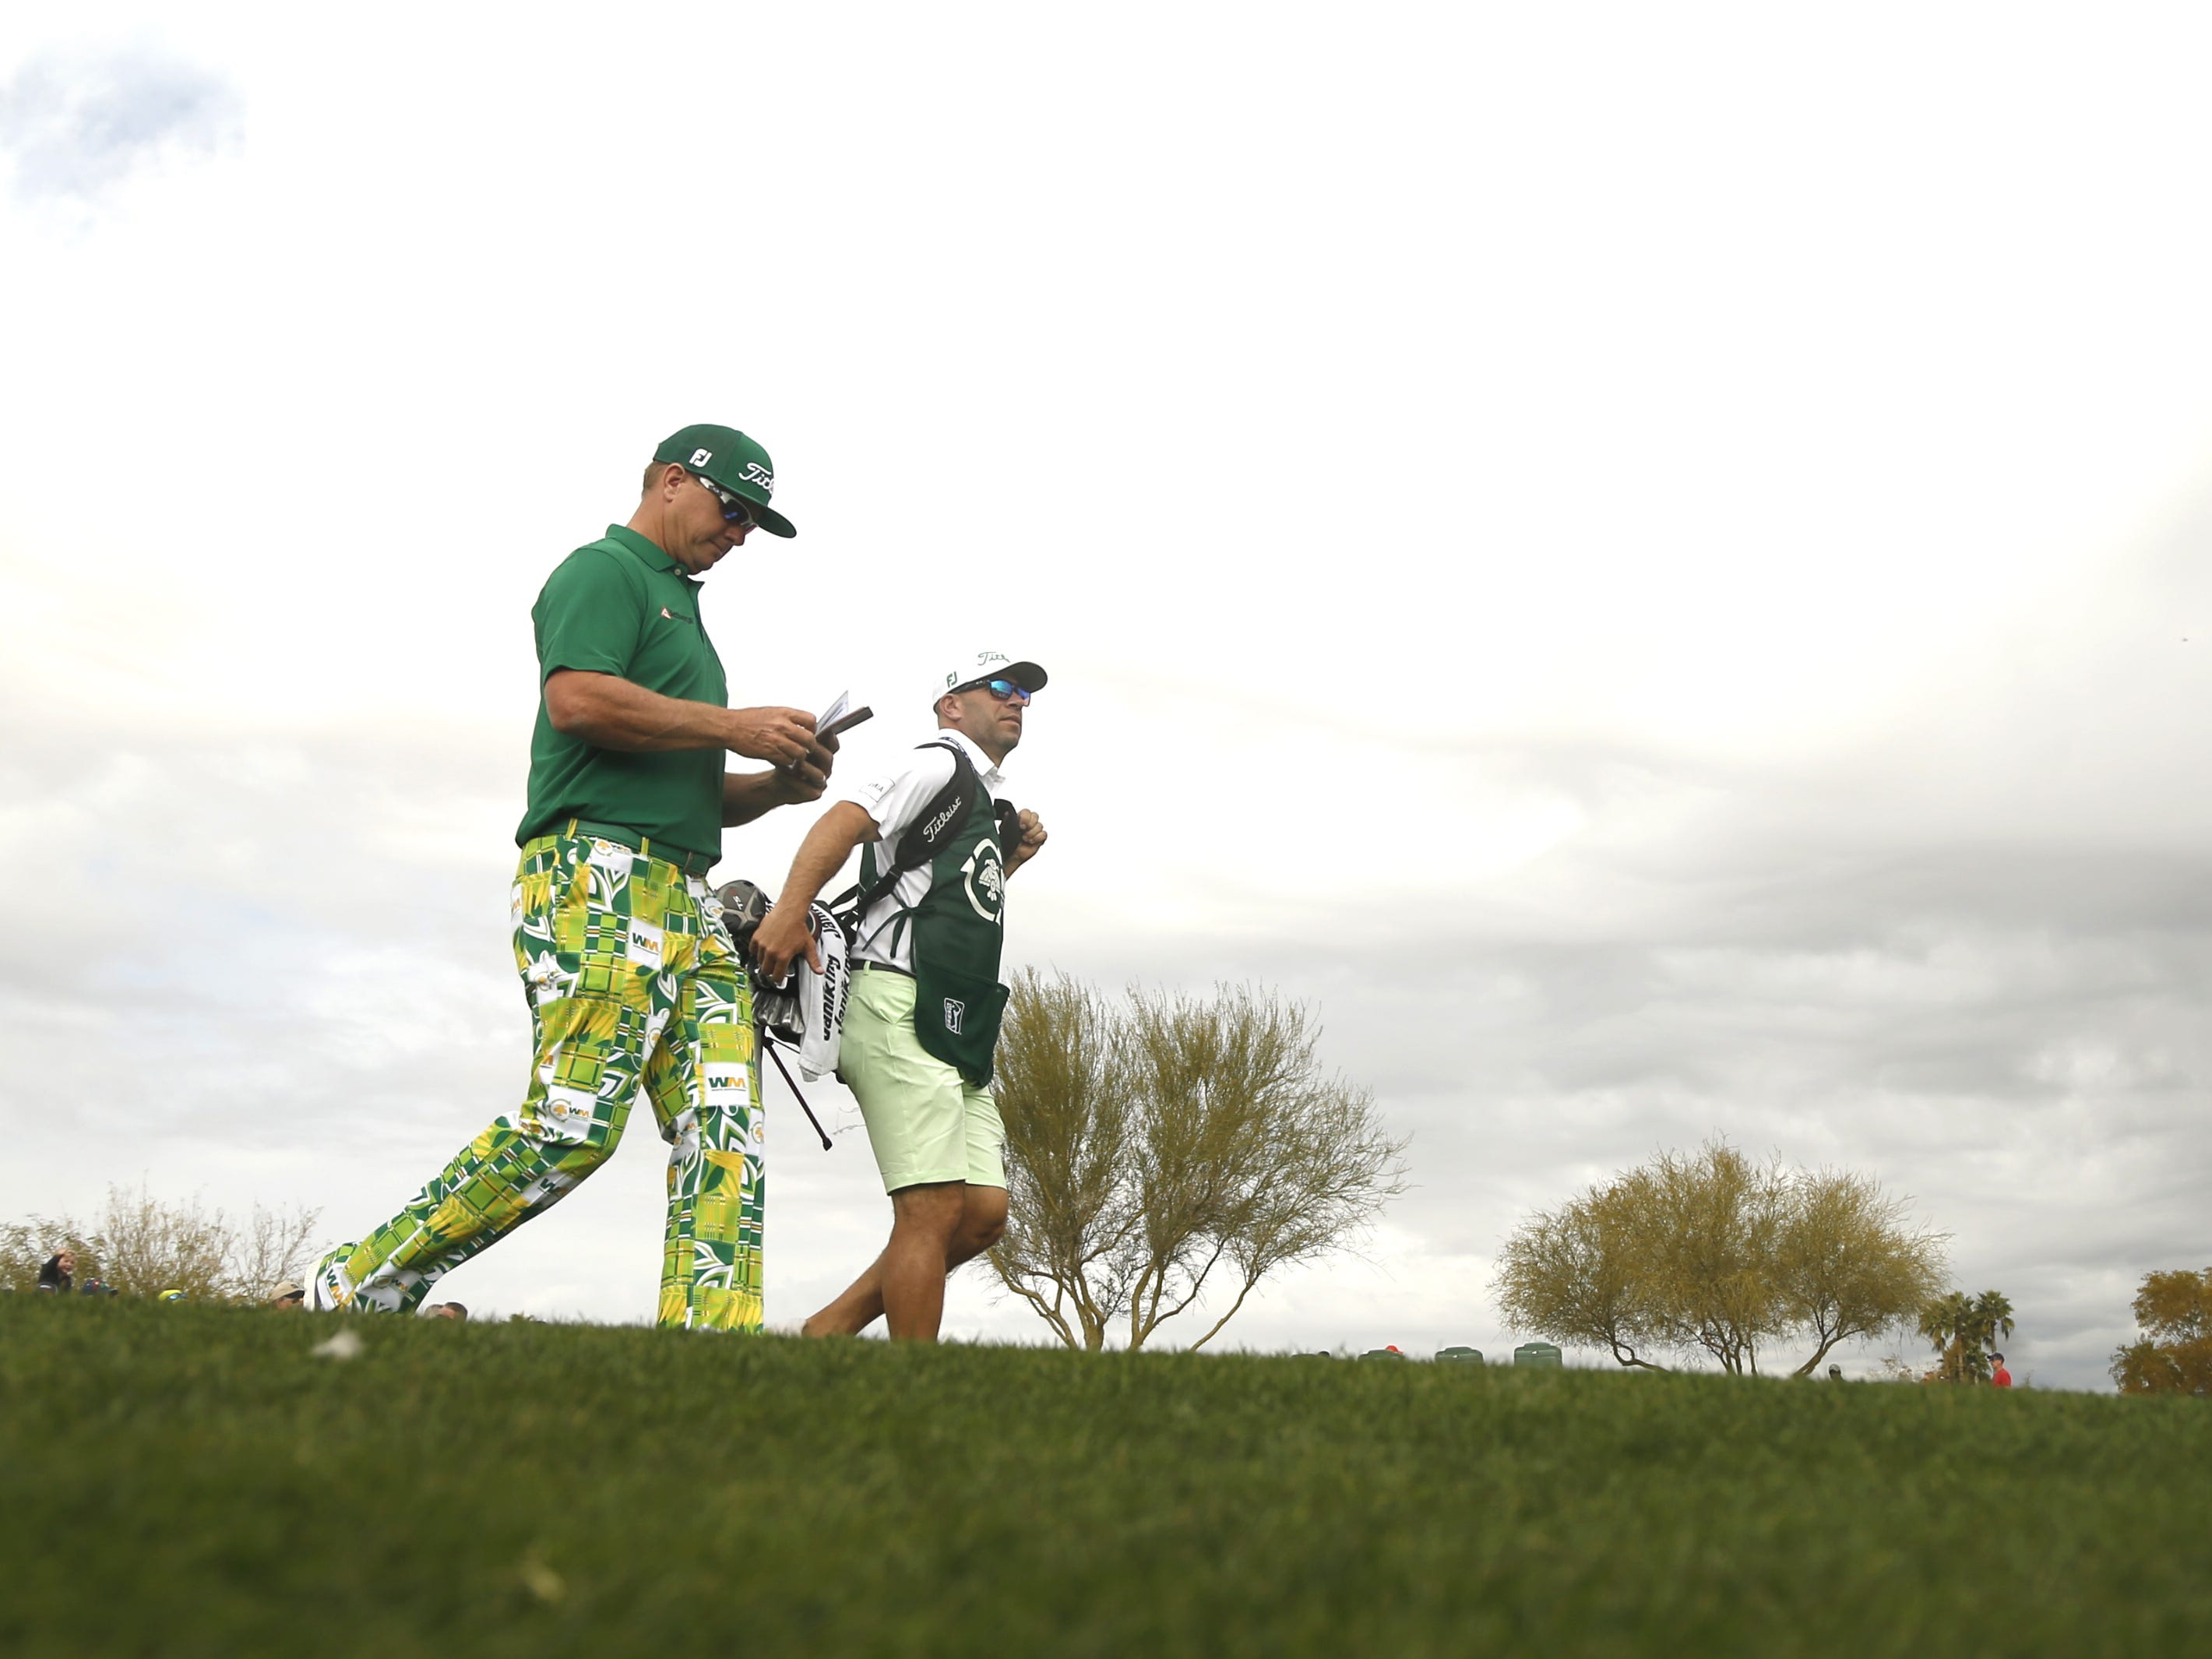 Charley Hoffman walks from the 8th tee box during the third round of the Waste Management Phoenix Open at TPC Scottsdale in Scottsdale, Ariz. on February 2, 2019.